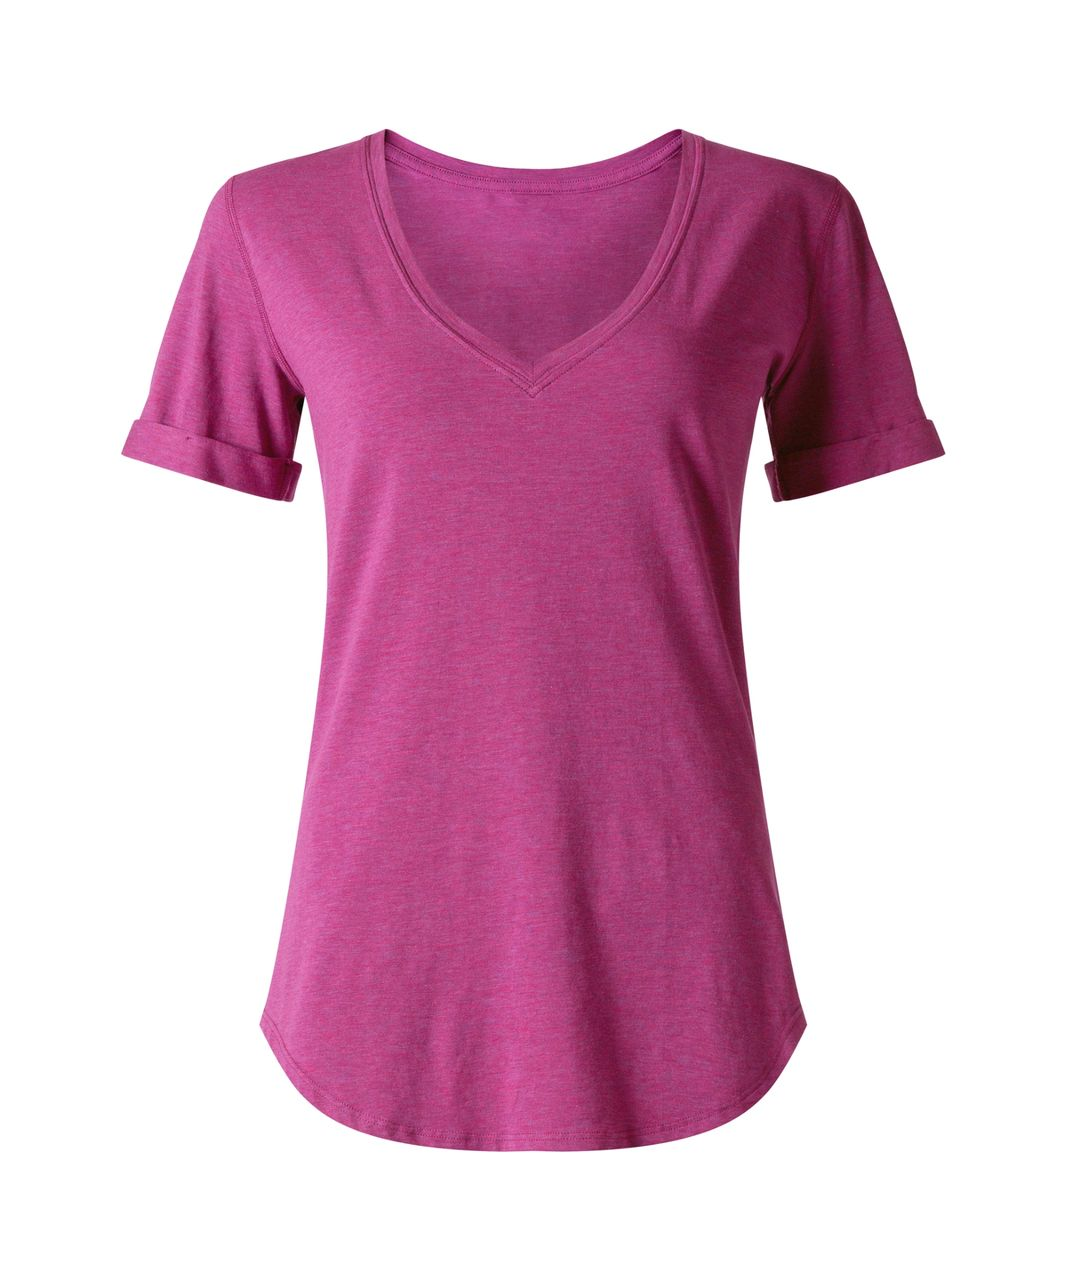 Lululemon Love Tee II - Heathered Regal Plum